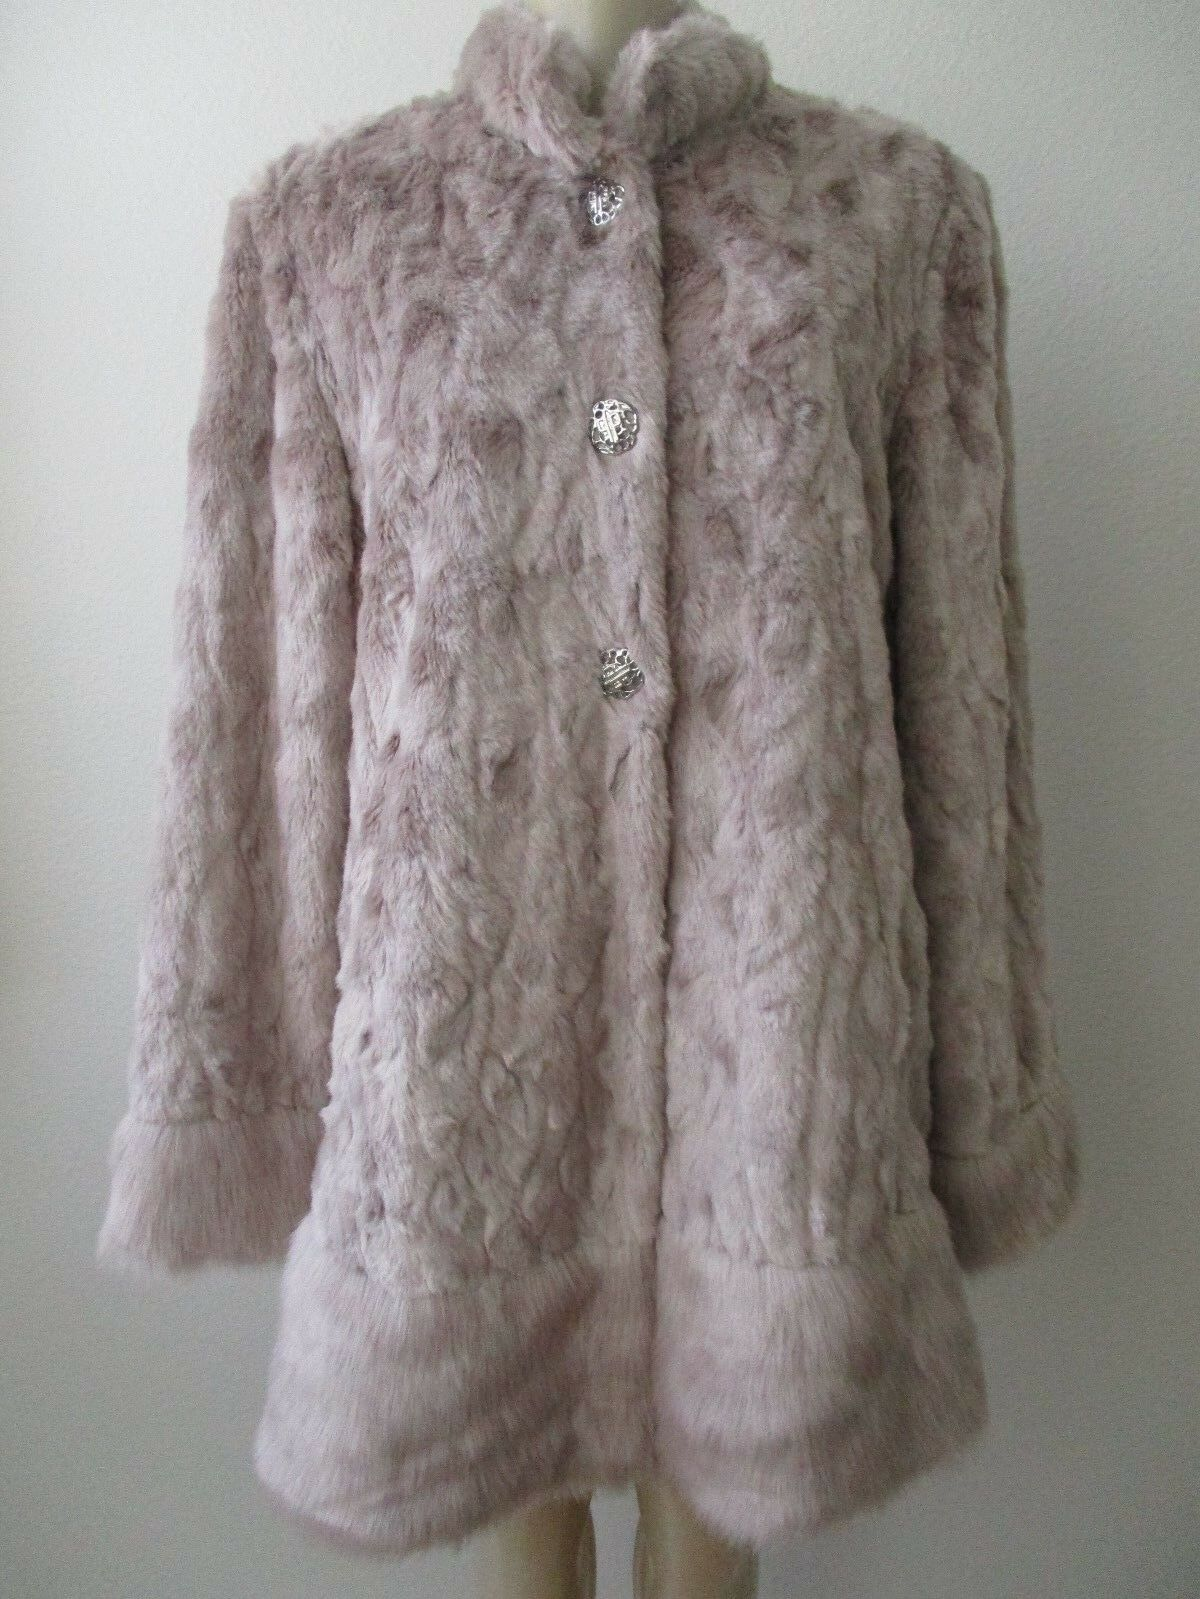 DENNIS BY DENNIS BASSO PLATINUM blueSH FAUX FUR LONG SLEEVE COAT SIZE M - NWT